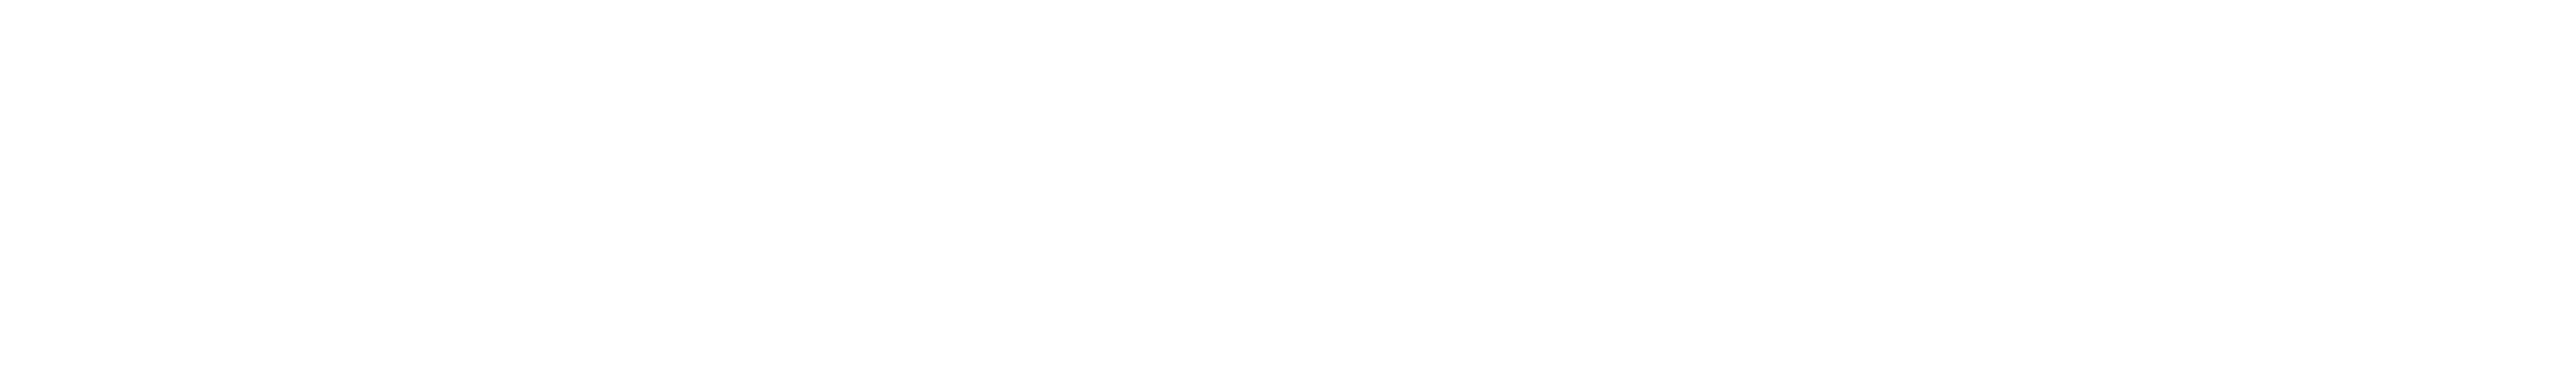 Yves_Rocher_logo_wordmark